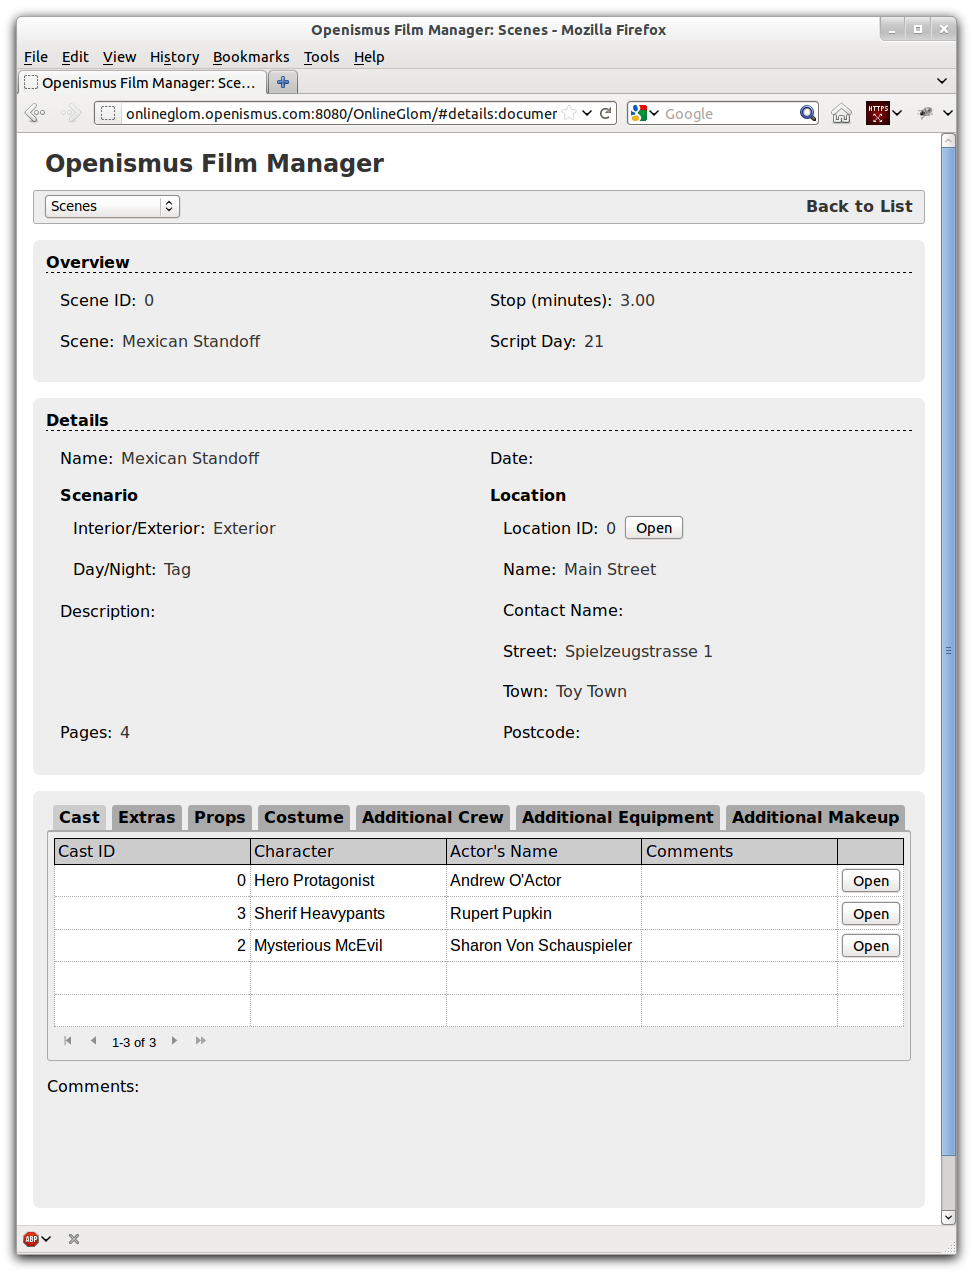 The Online Glom Details view page.